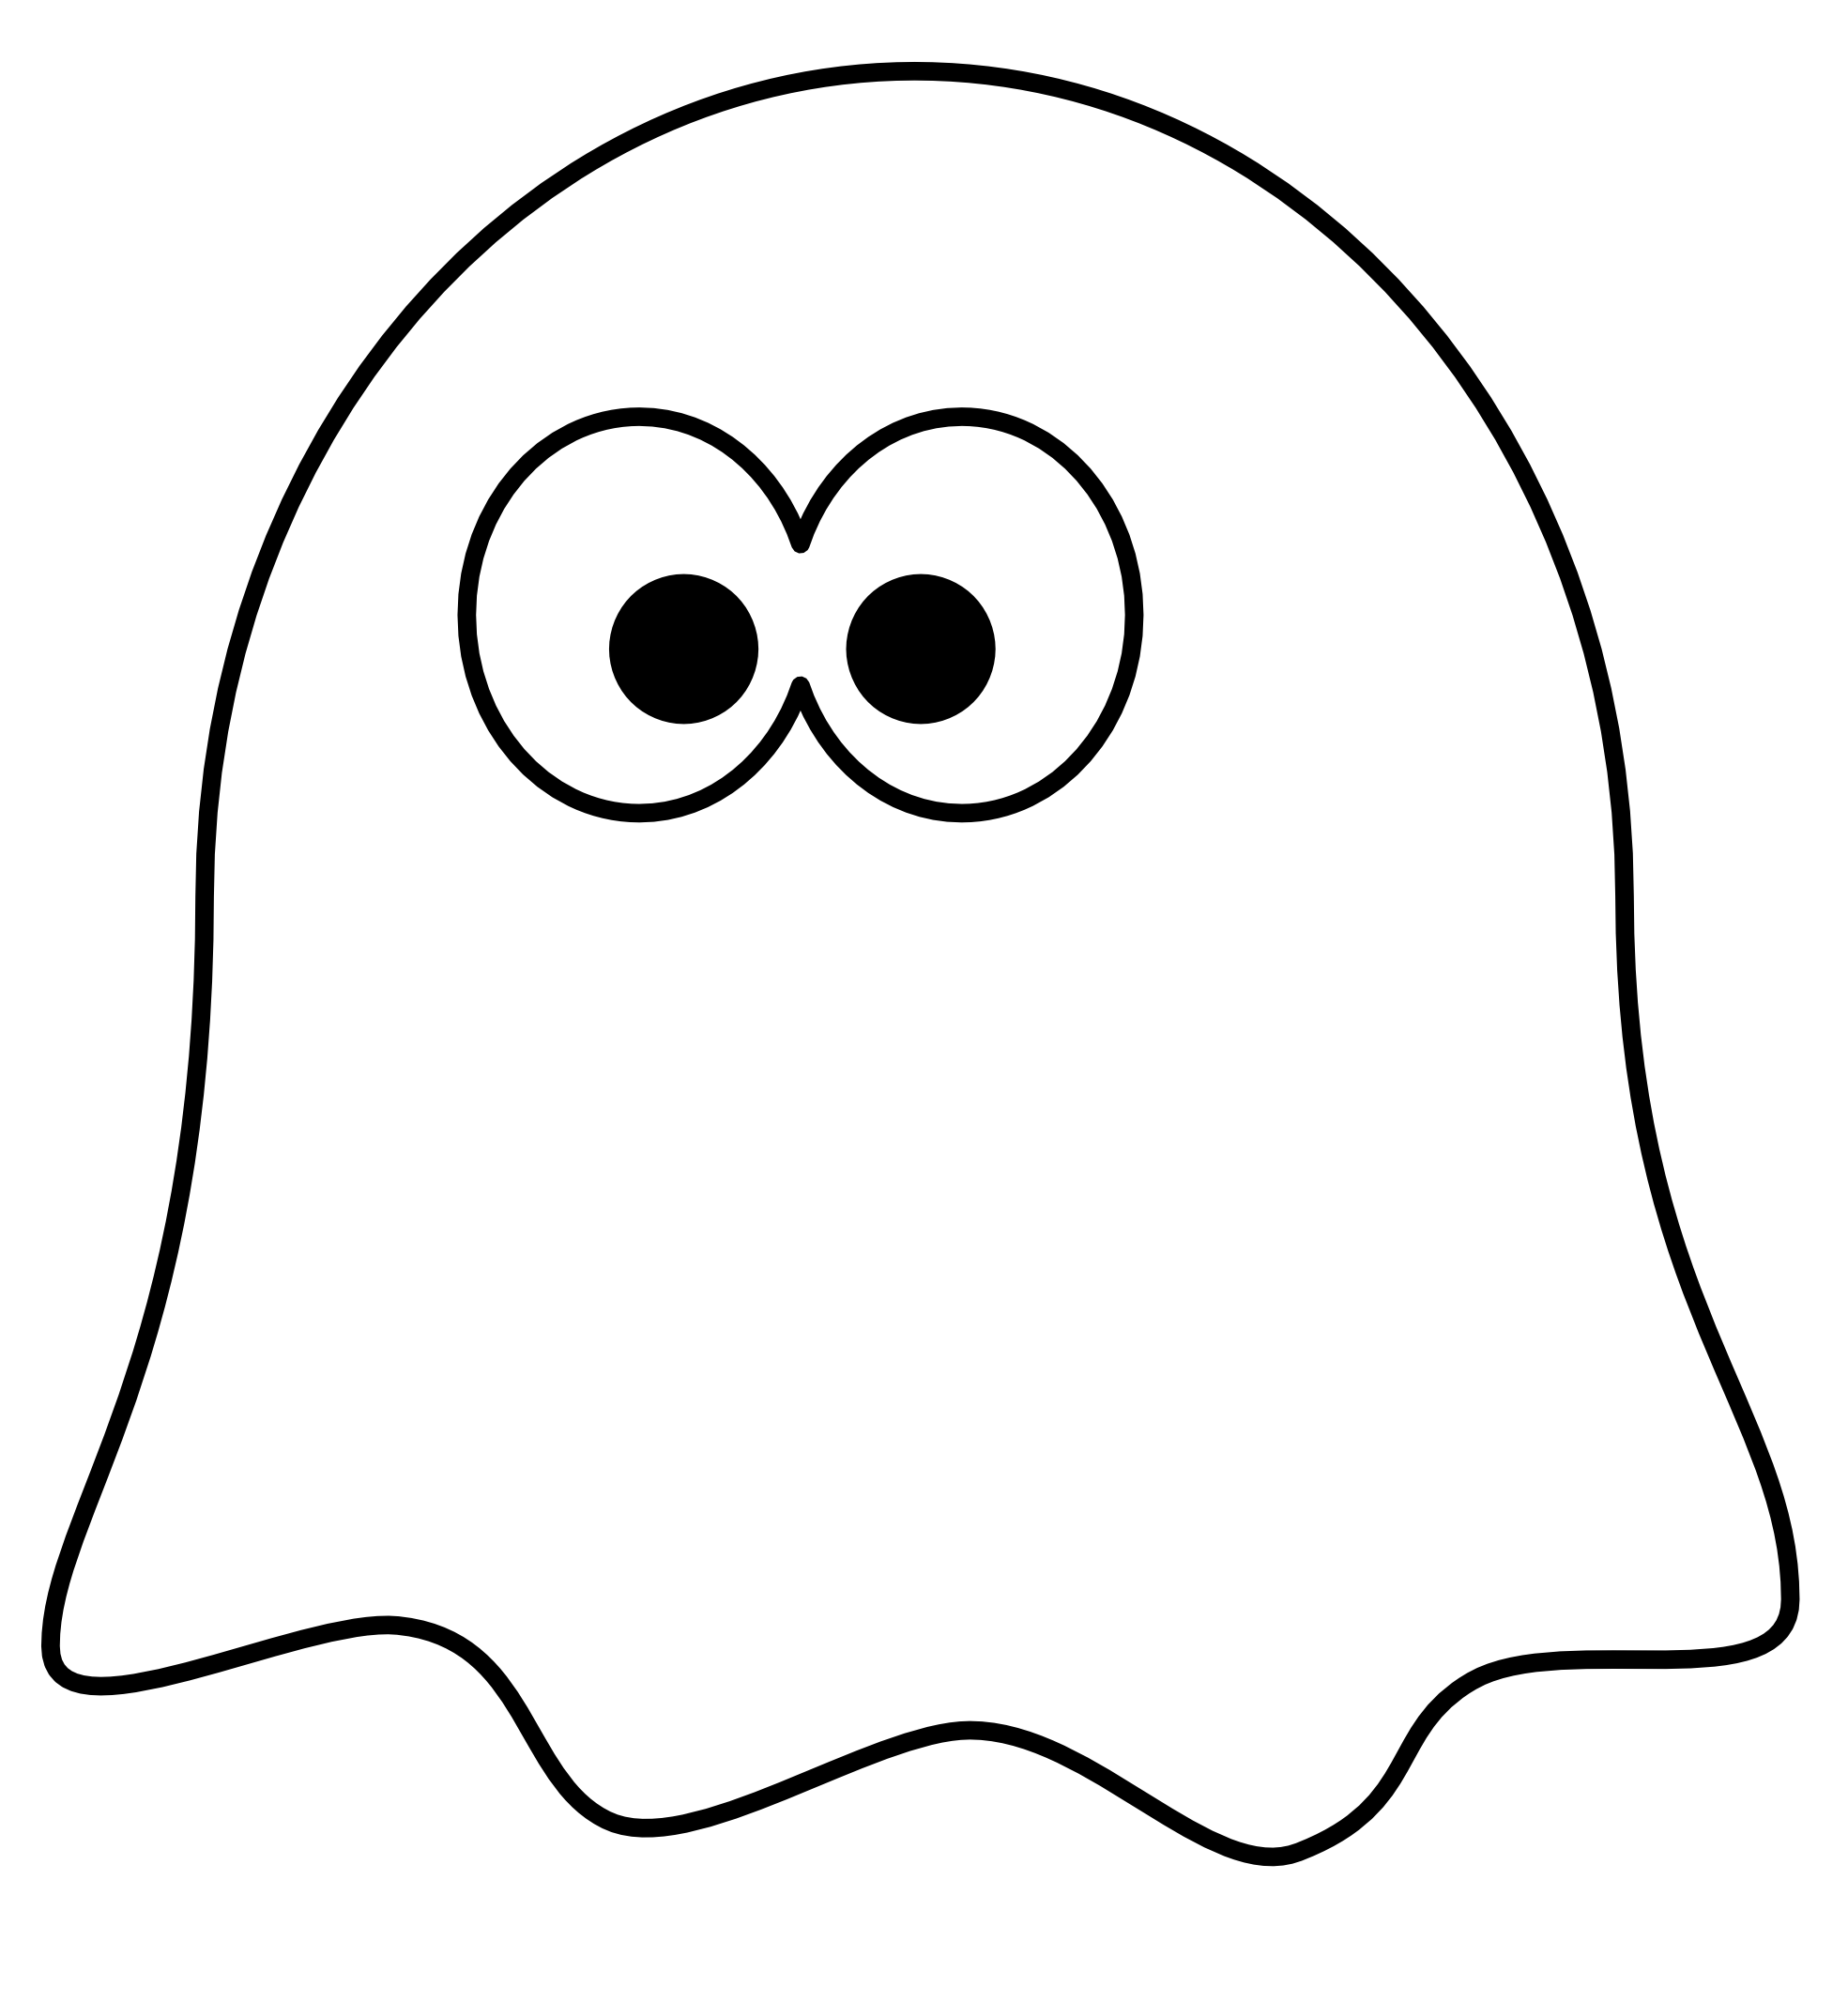 Outline clip art clipart. Ghost cartoon png clipart